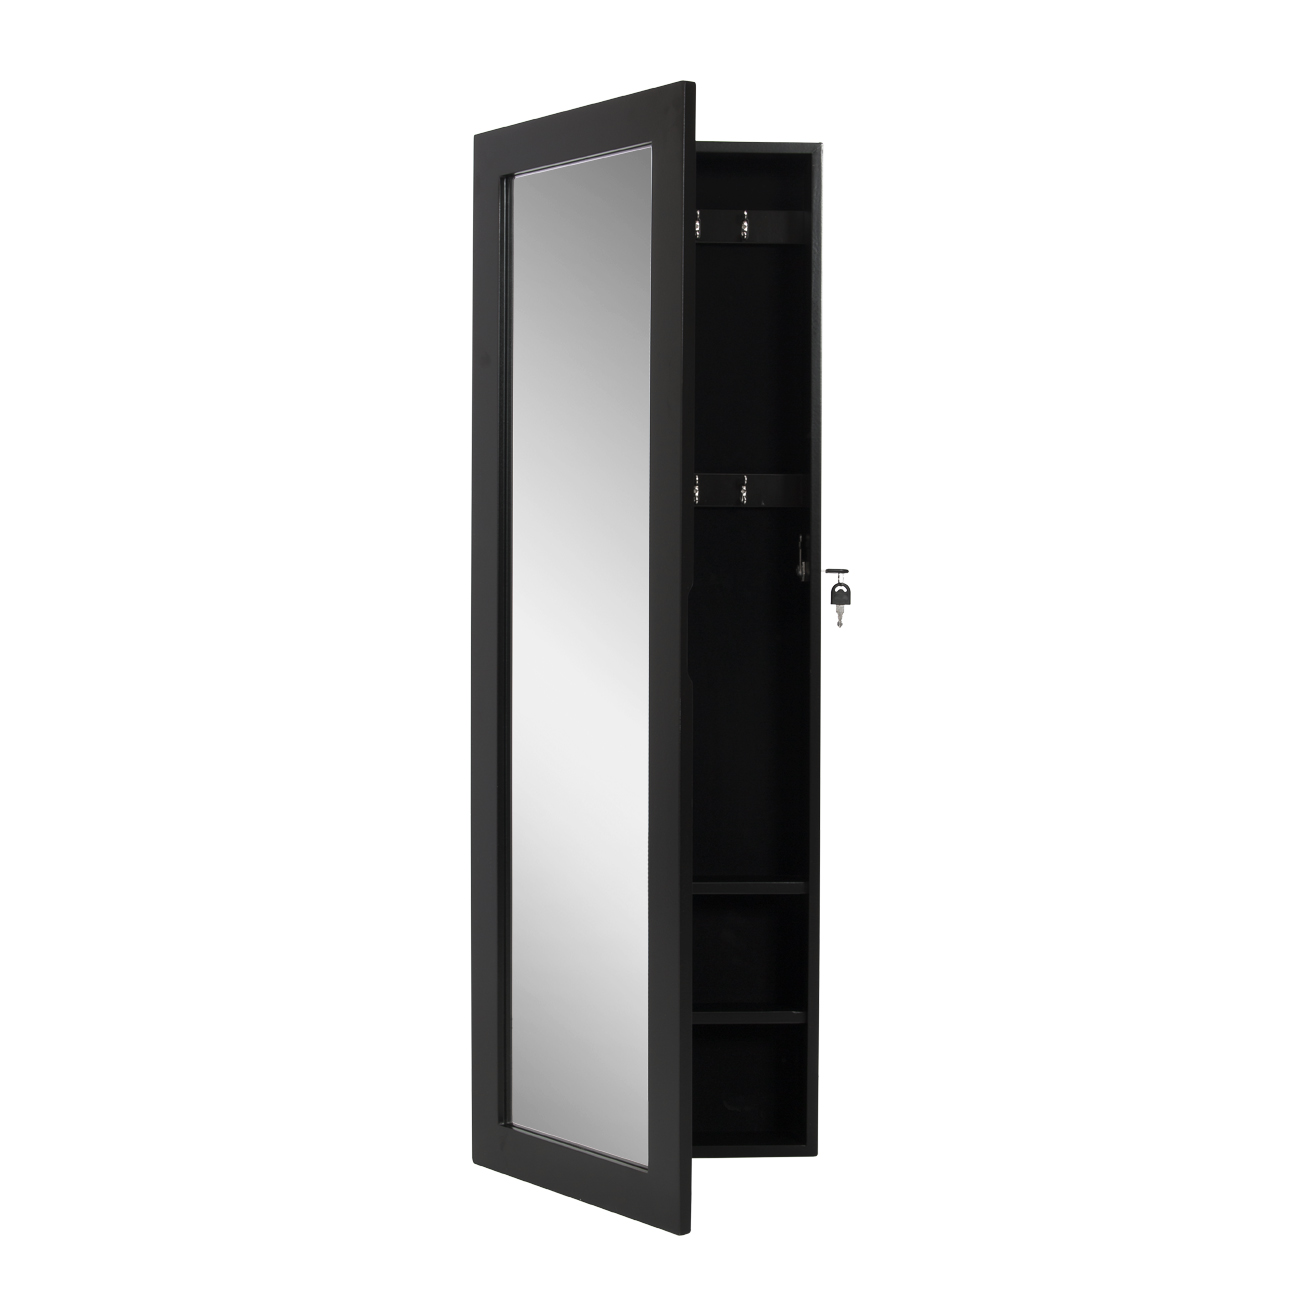 Mirrored Jewelry Cabinet Armoire Wall Mount Organizer ...